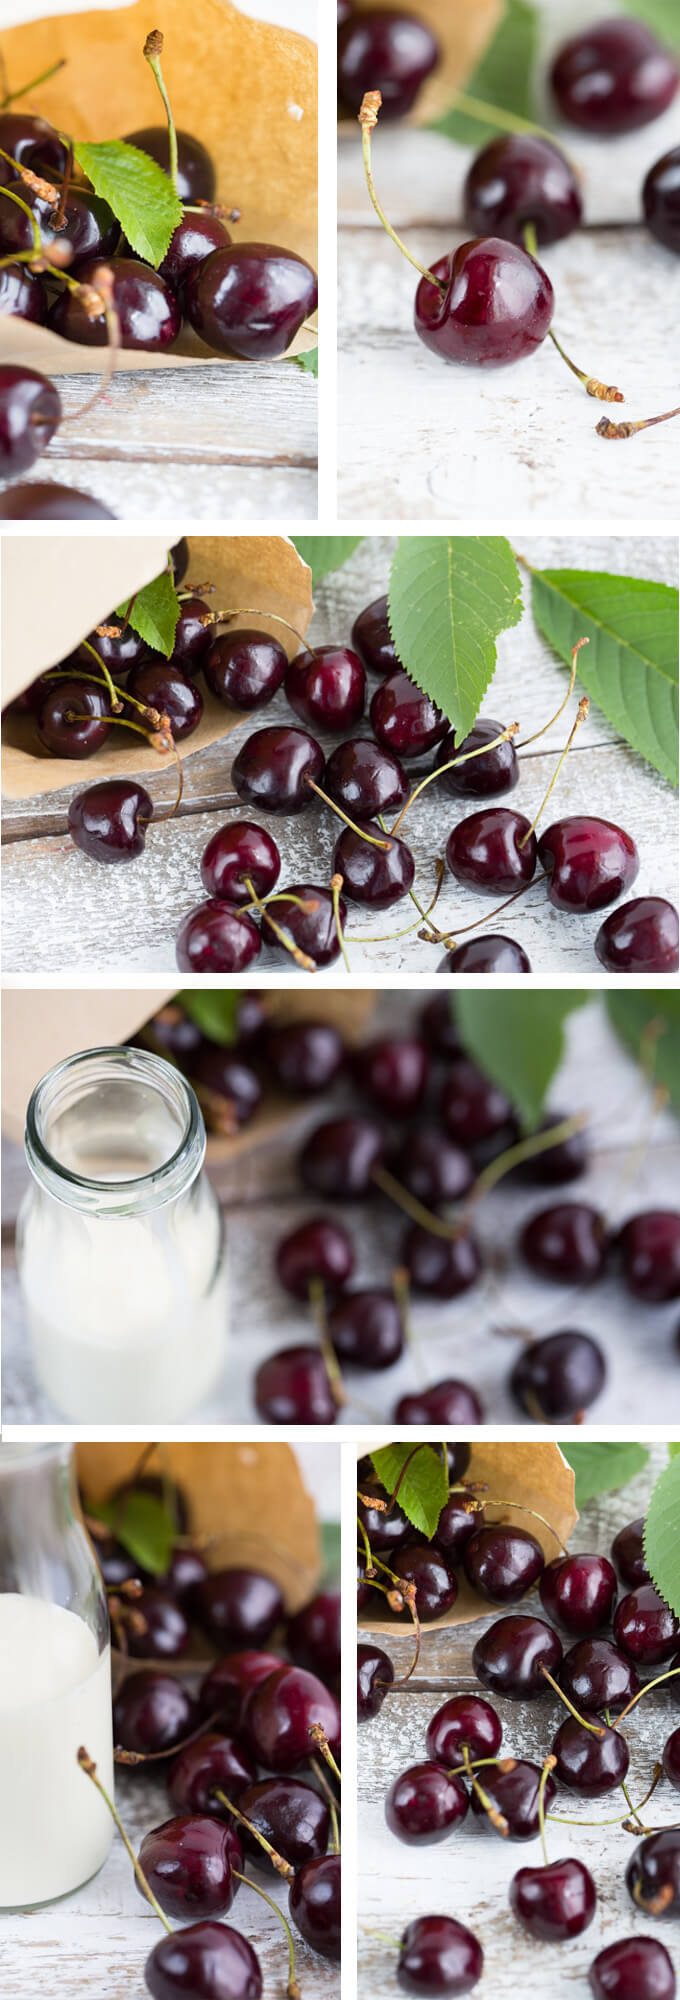 cherries - tinaengel.com